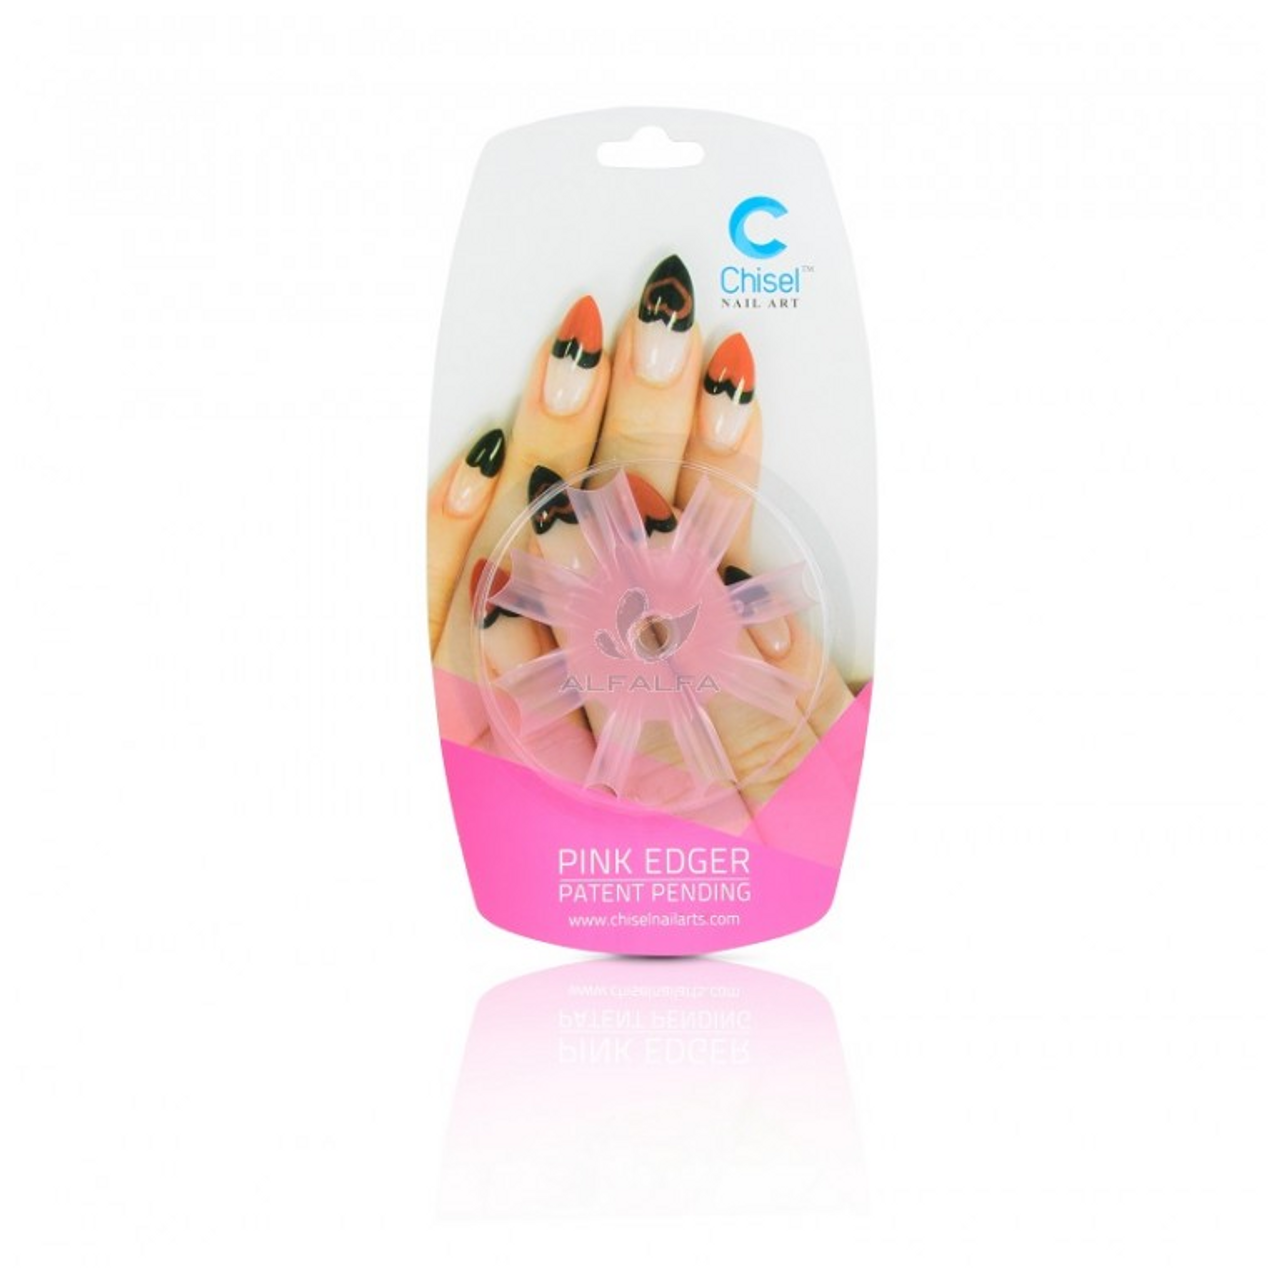 20% Off Chisel Nail Art - Heart Edger Pink - Princess Nail Supply